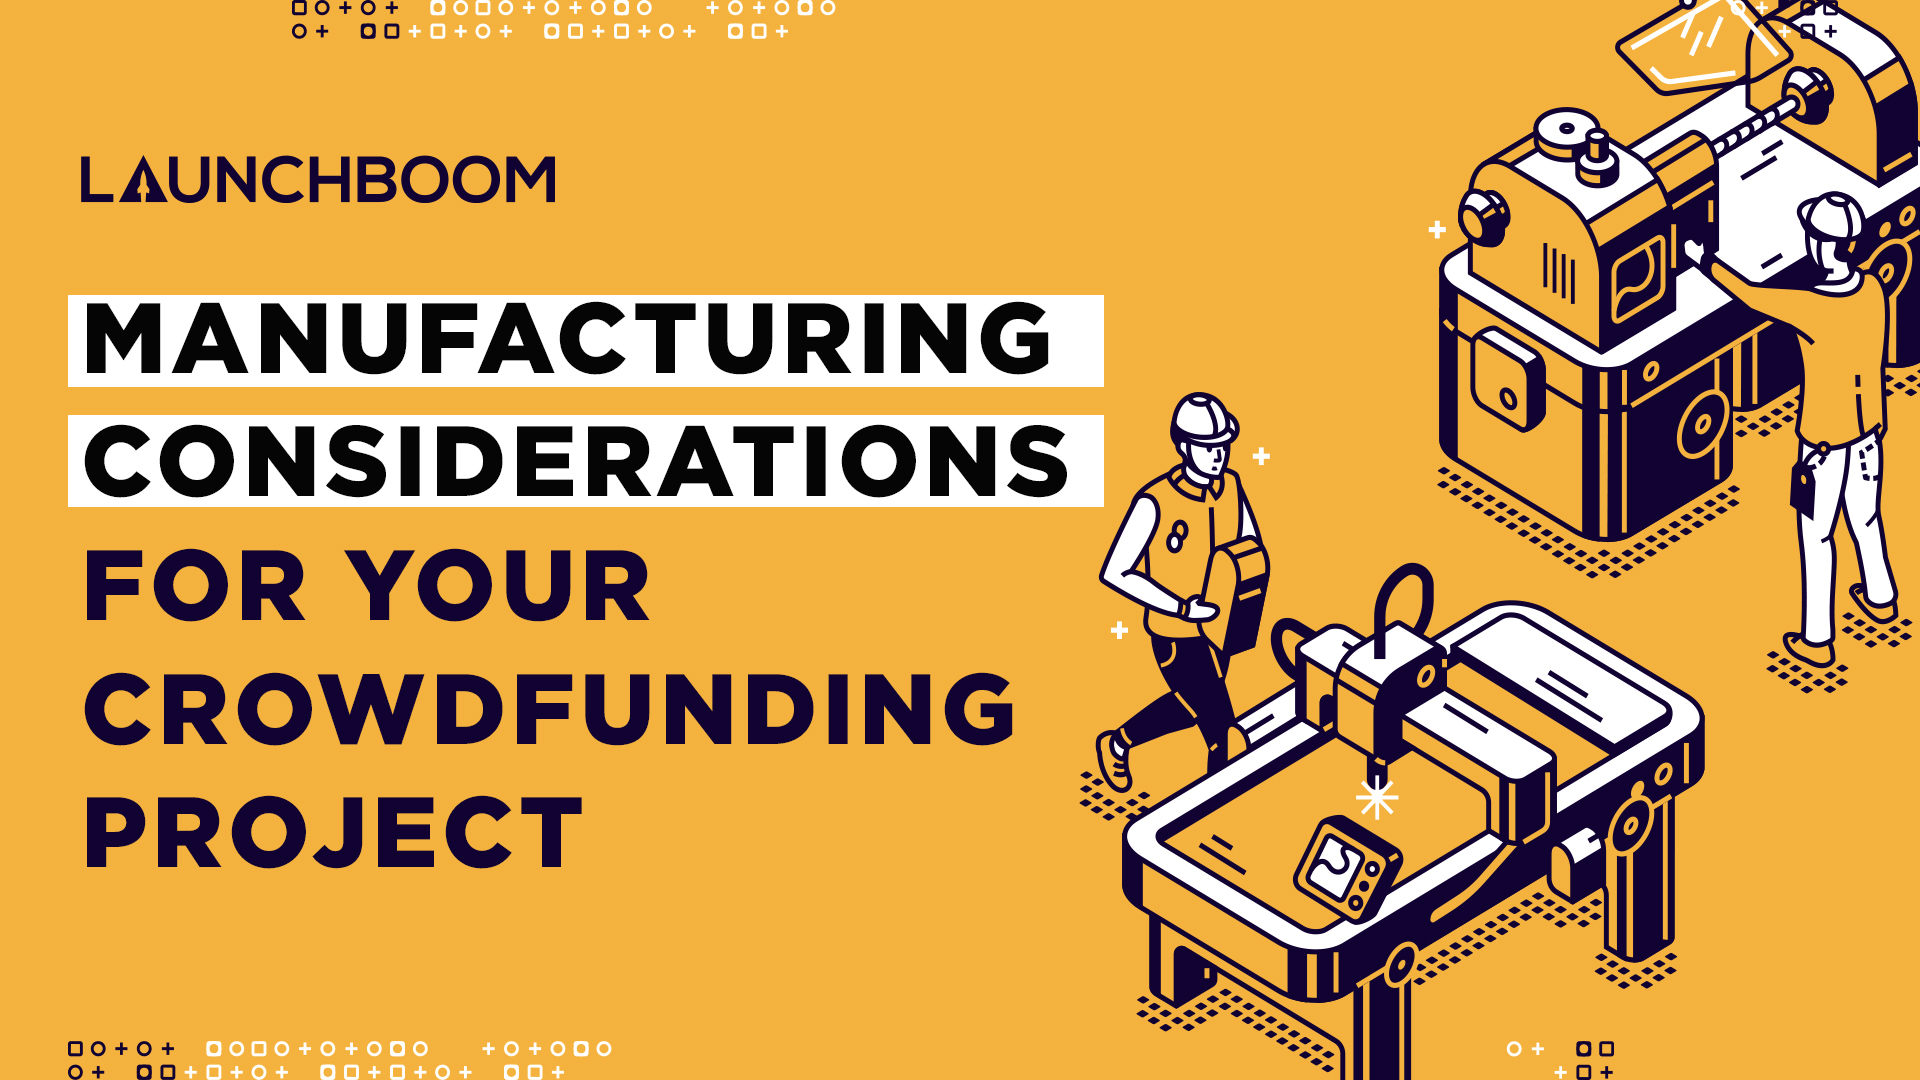 Manufacturing considerations for crowdfunding projects